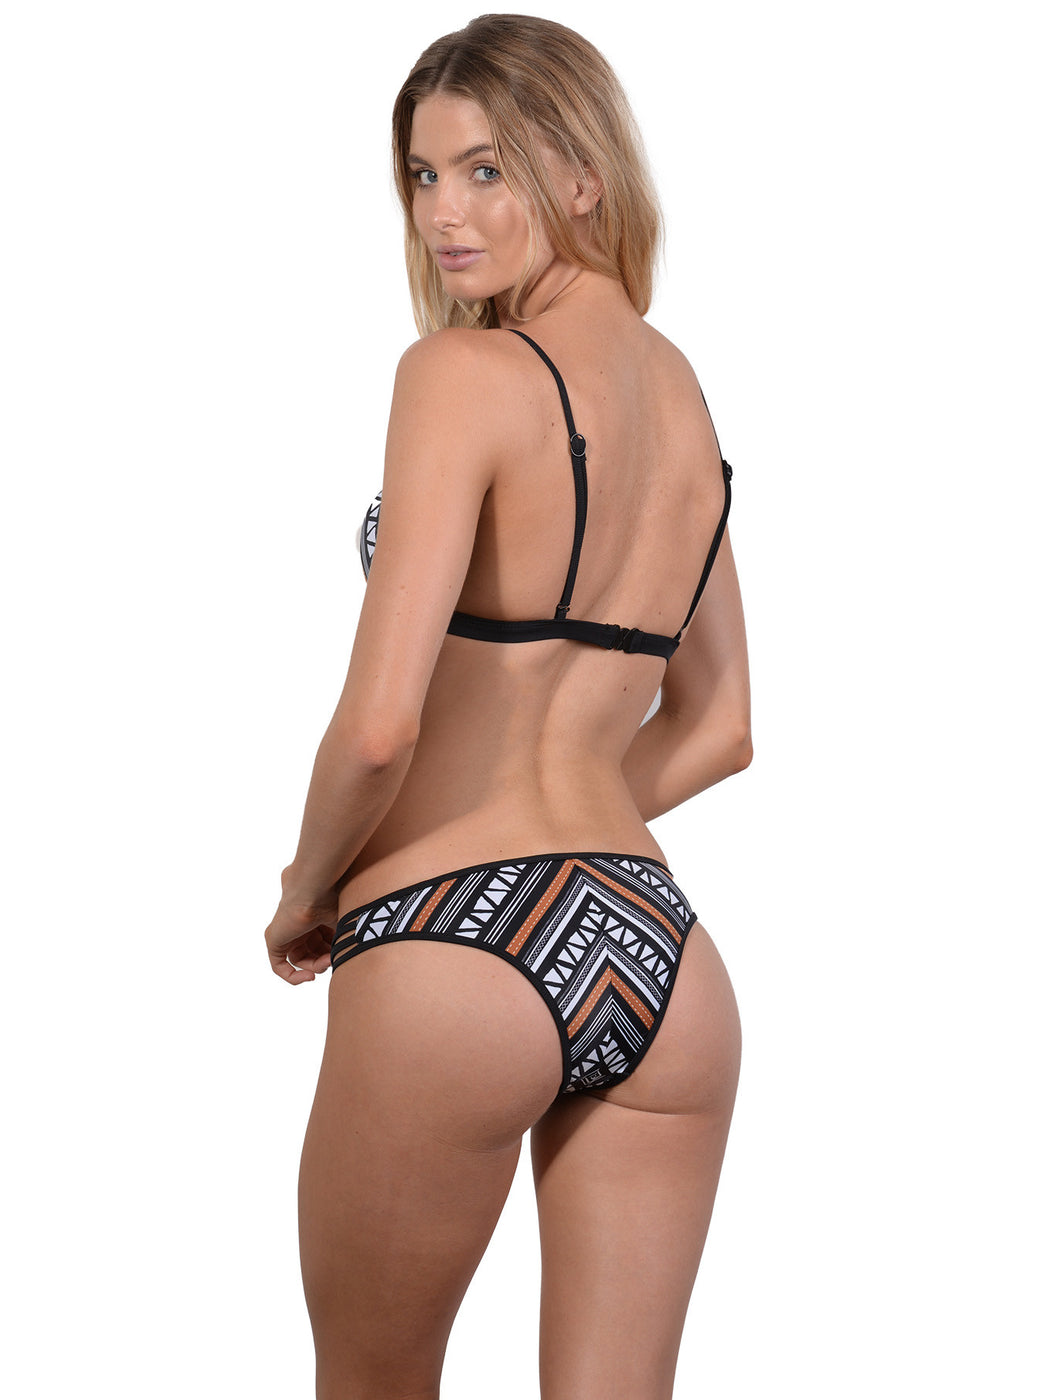 Back view of Zulu Bralette Bikini Top